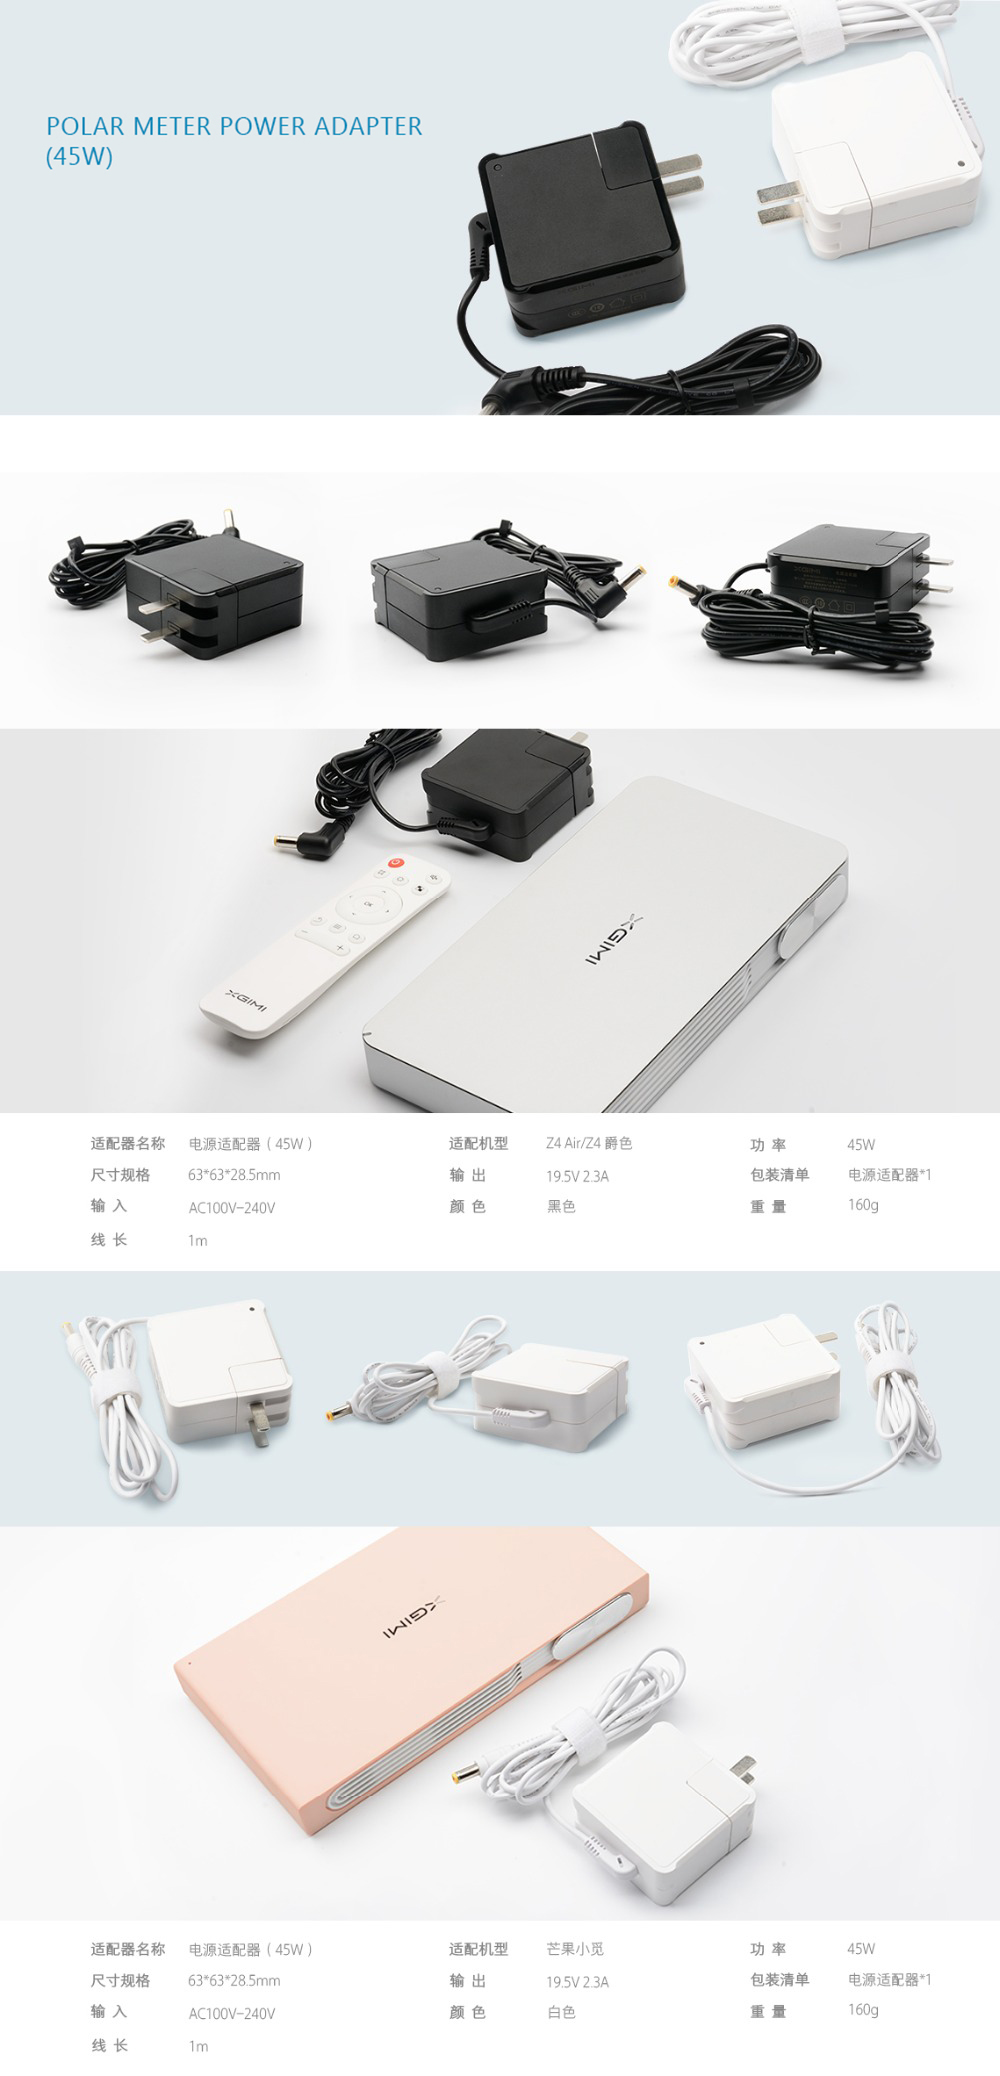 XGIMI Z4 Air projector power adapter